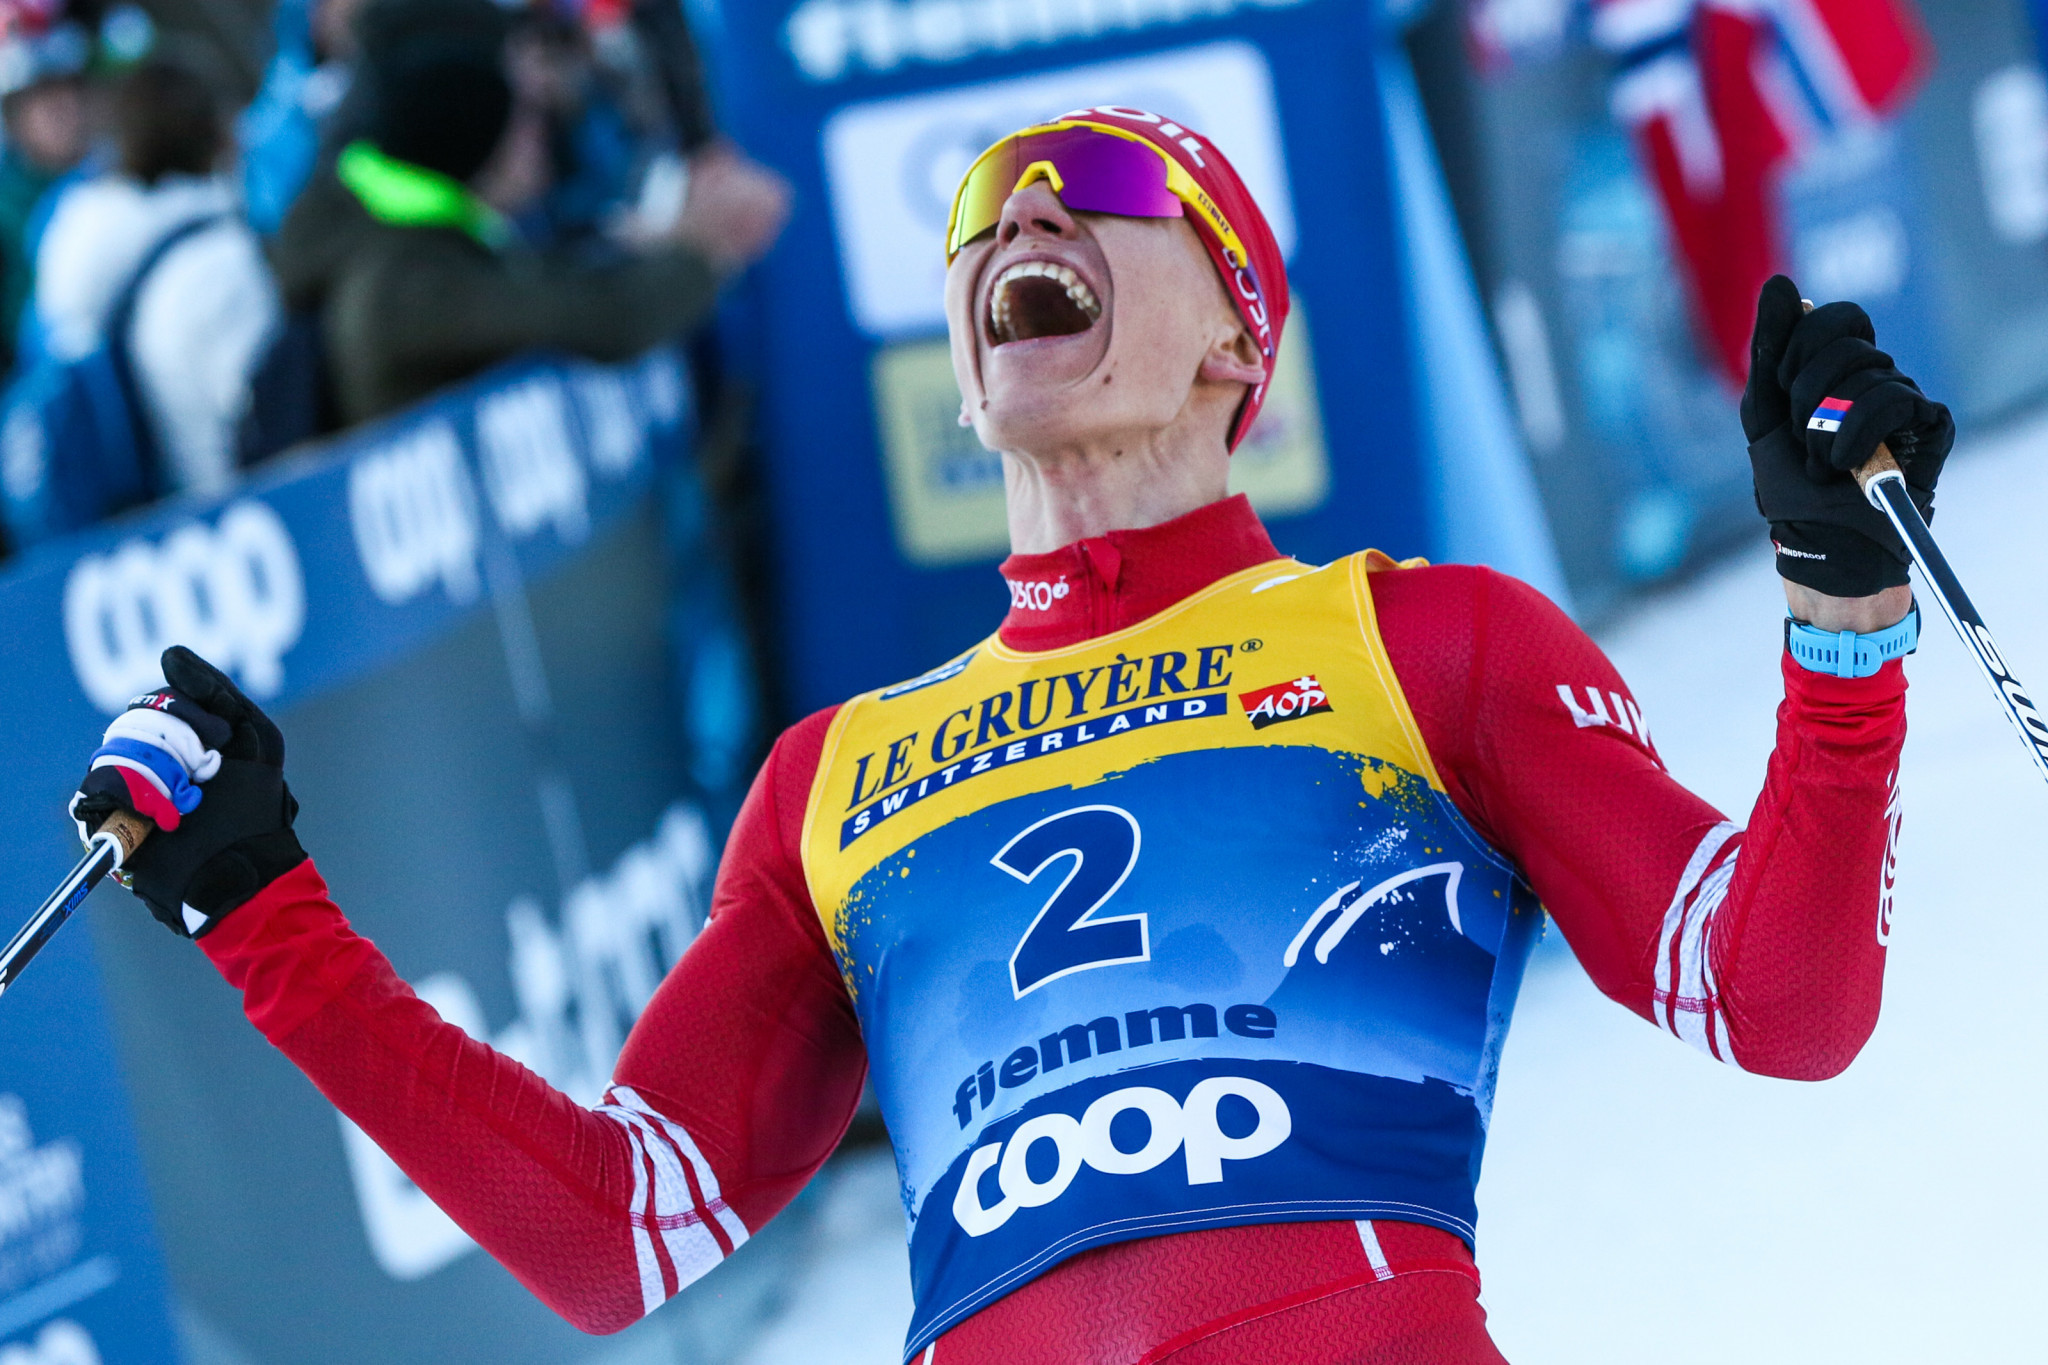 Alexander Bolshunov is a big Russian hope in cross-country skiing for Beijing 2022 ©Getty Images